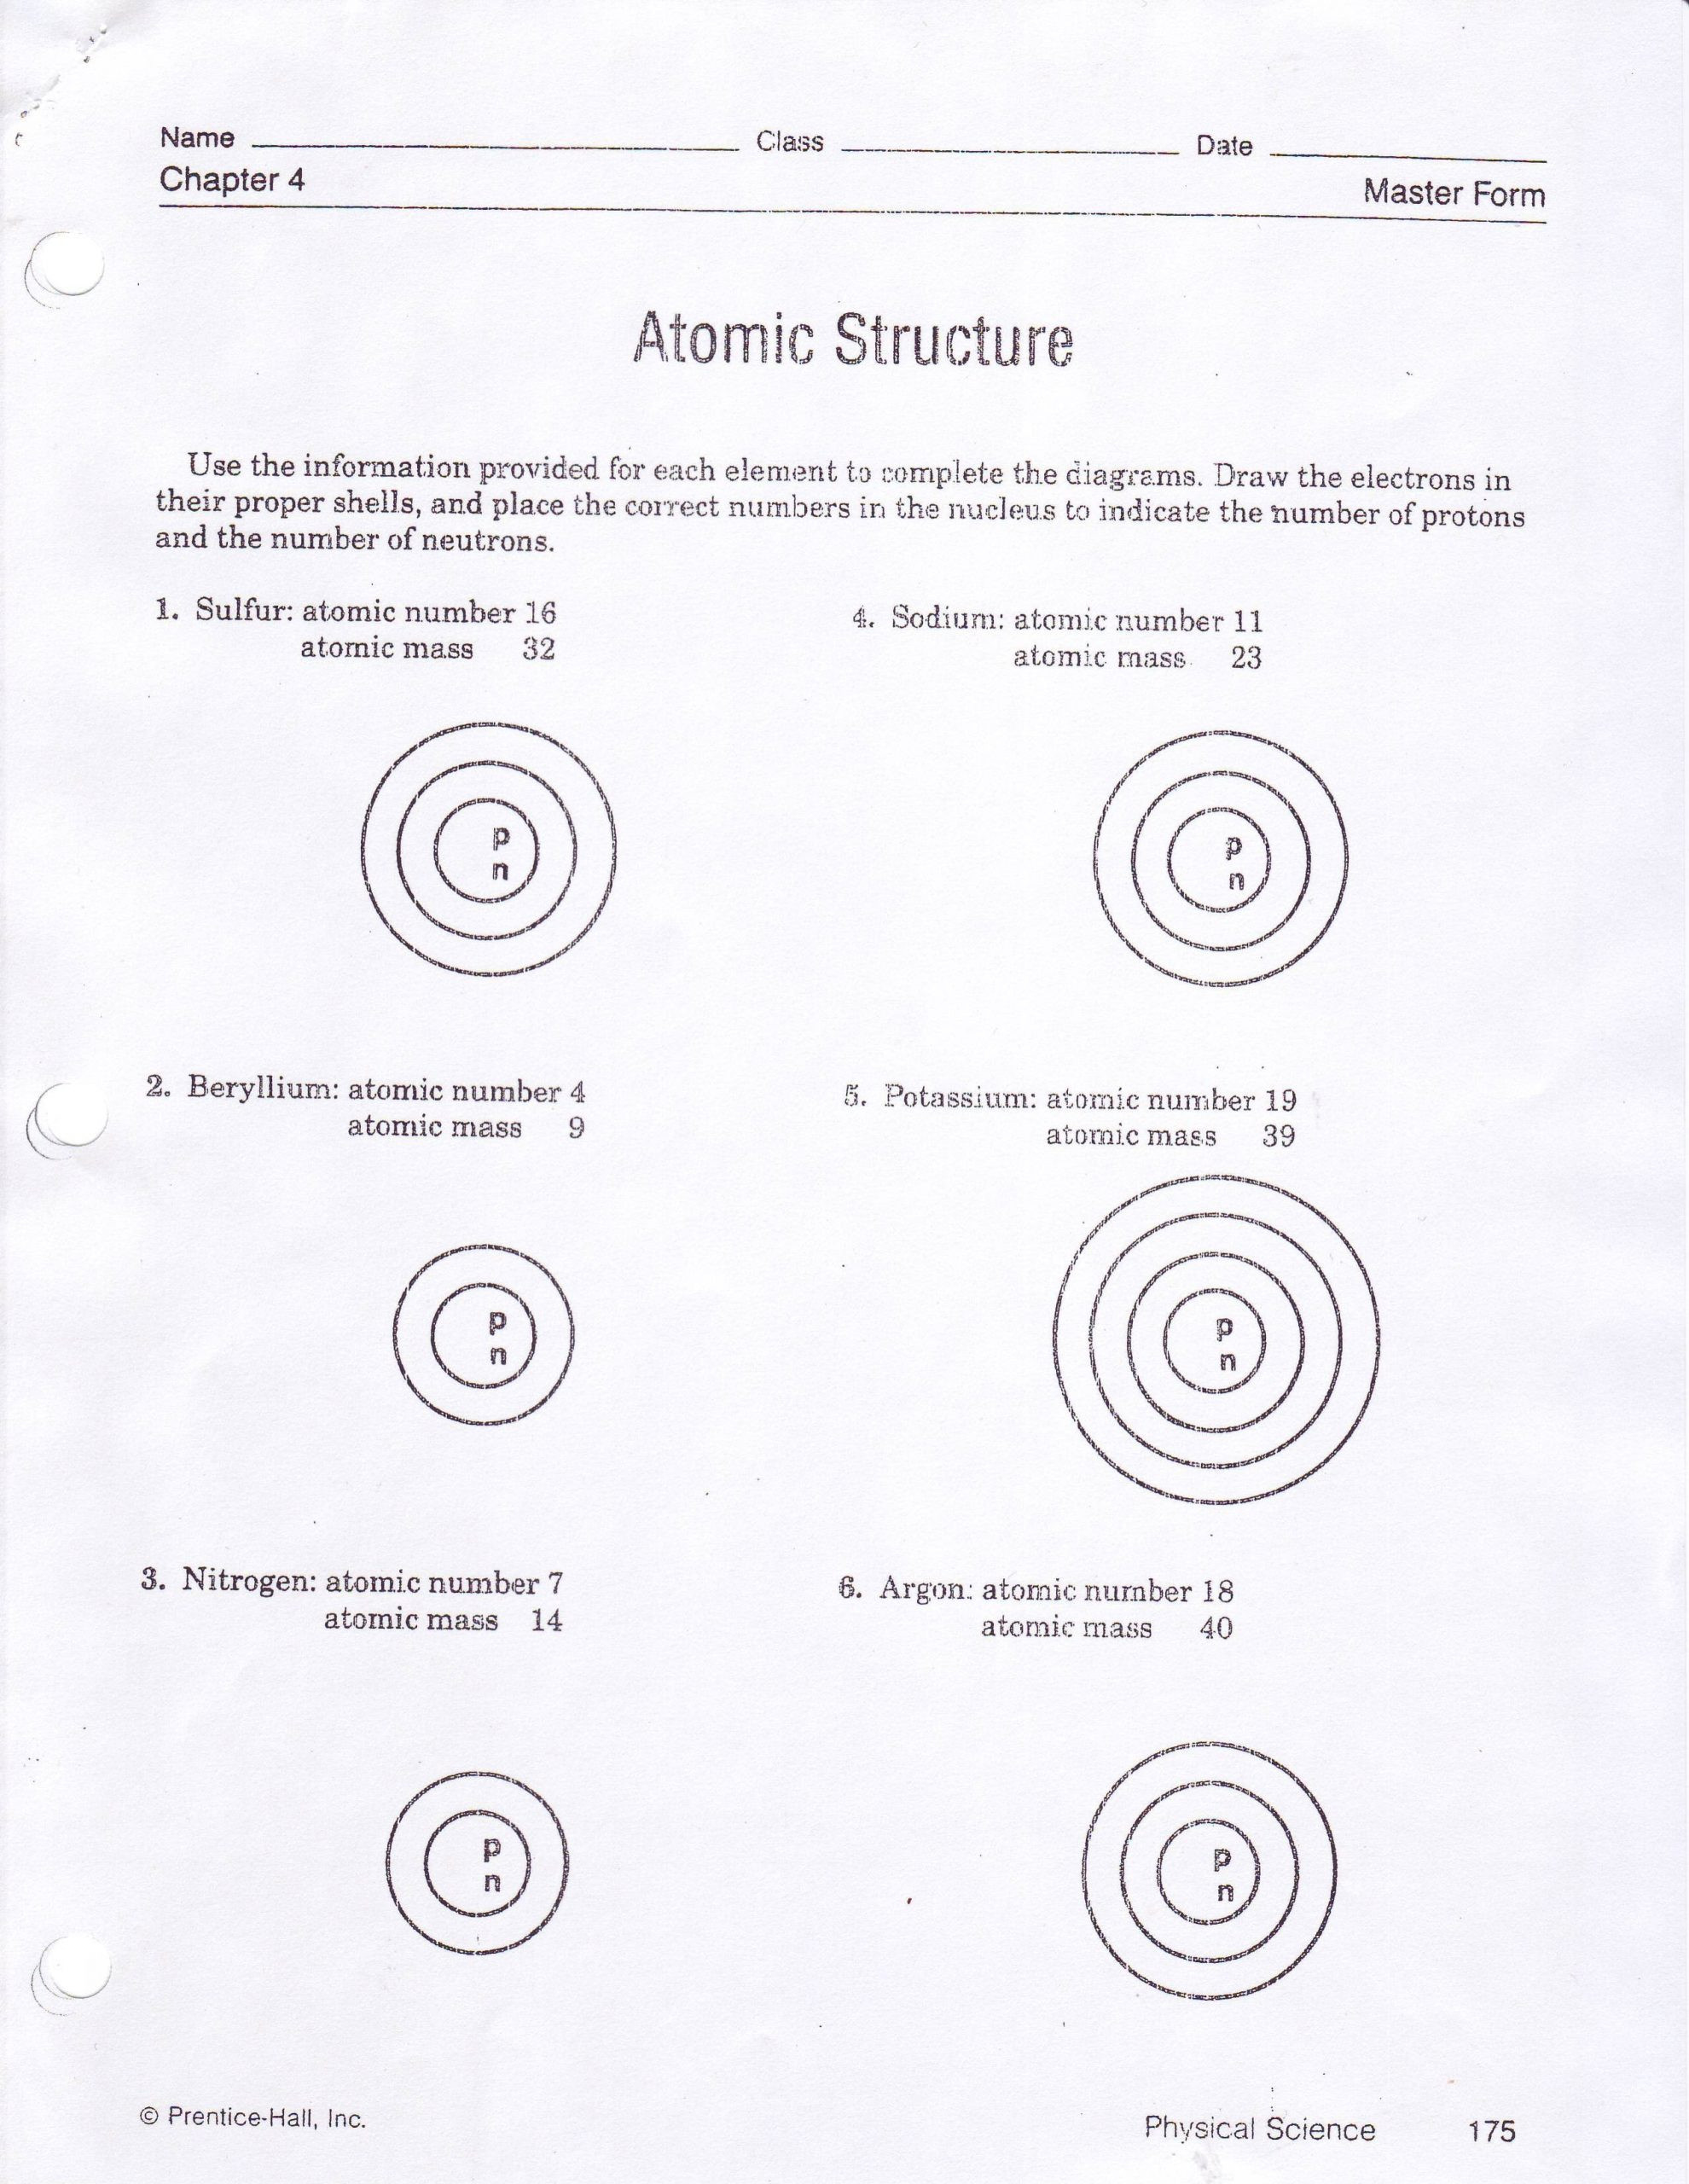 Atomic Structure Worksheet Answers Chemistry Worksheets 42 astonishing atomic Structure Worksheet